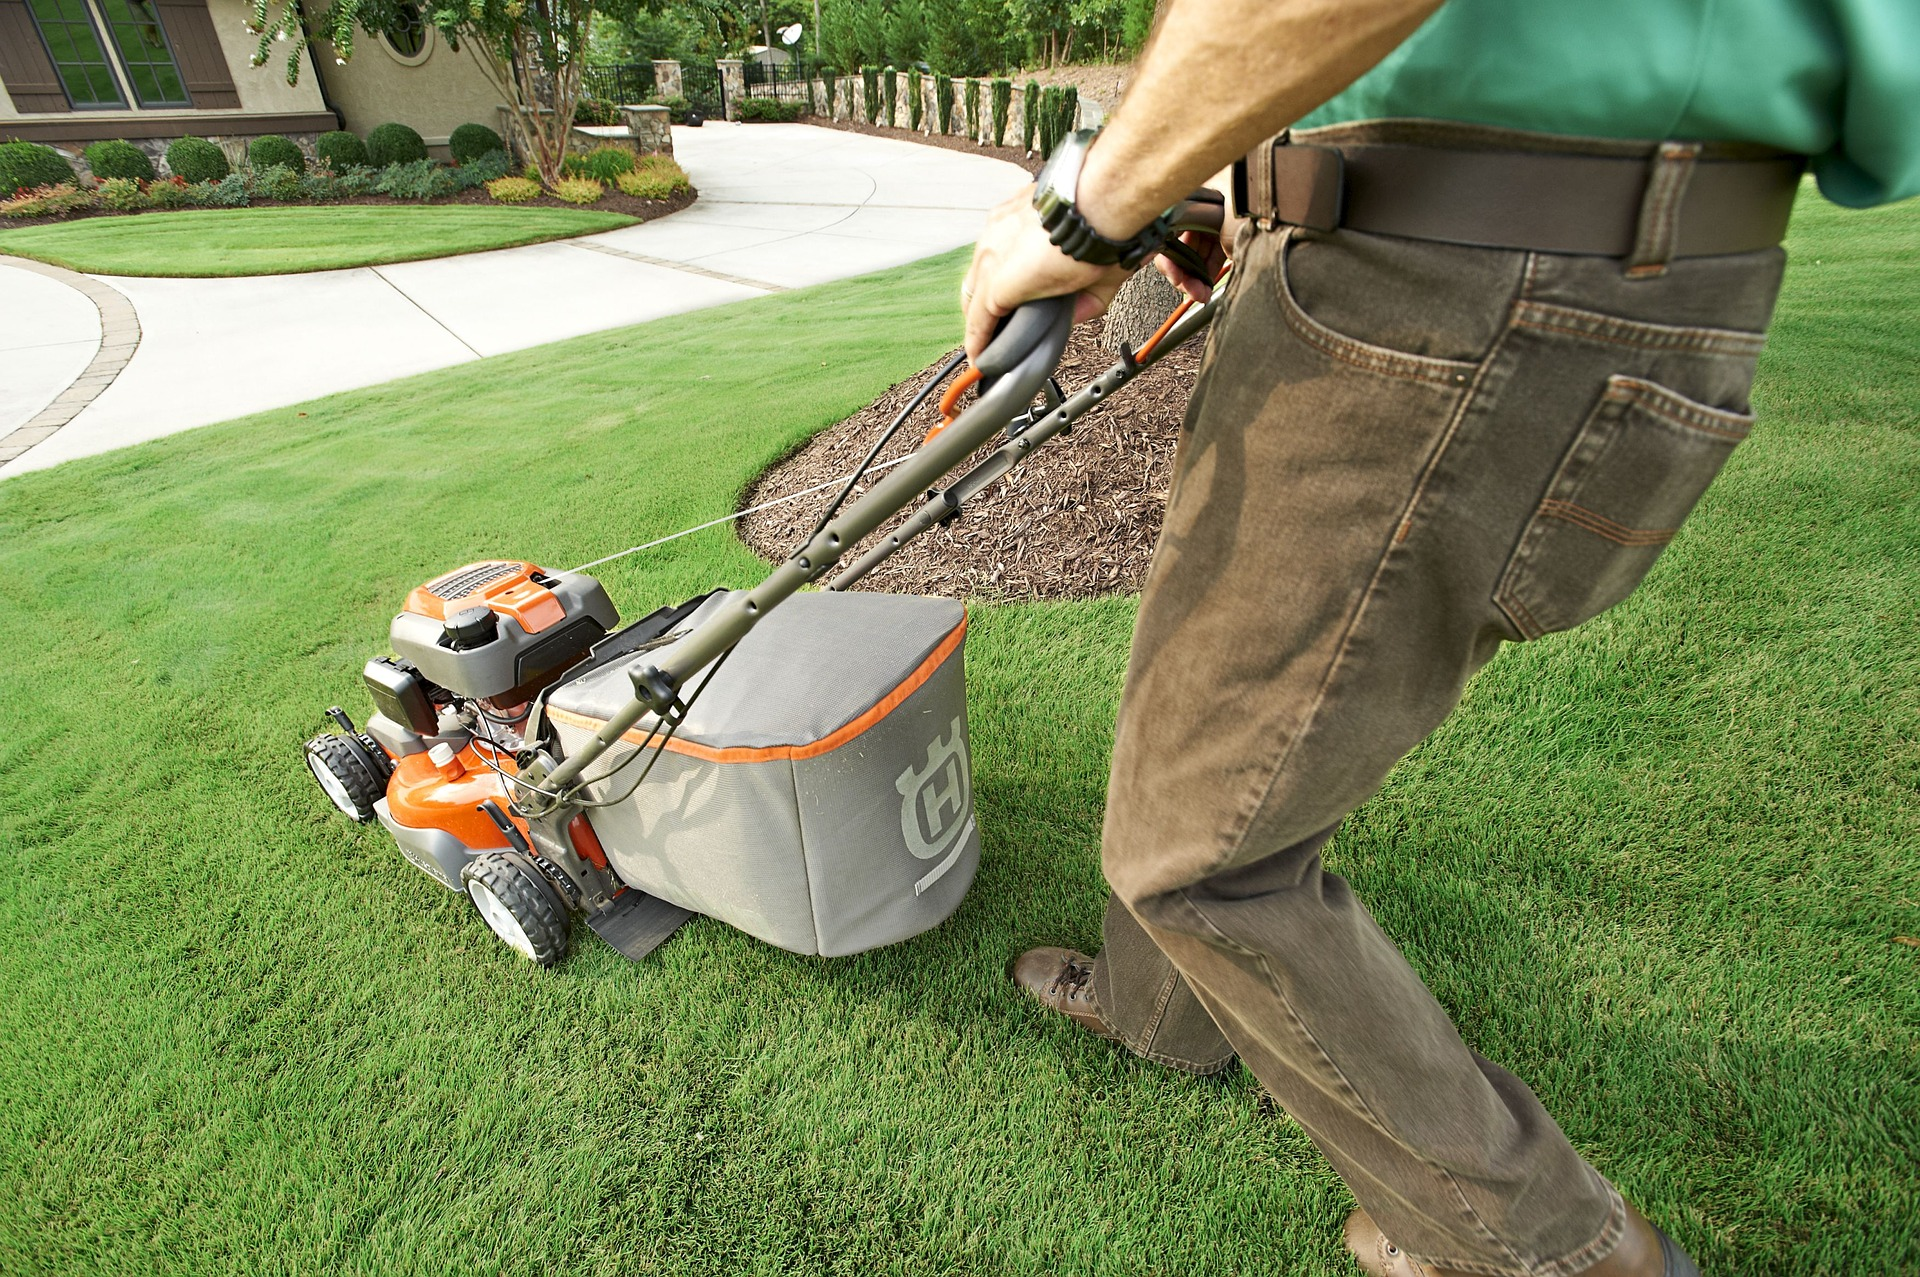 Maintaining a lawn with groundskeeping work